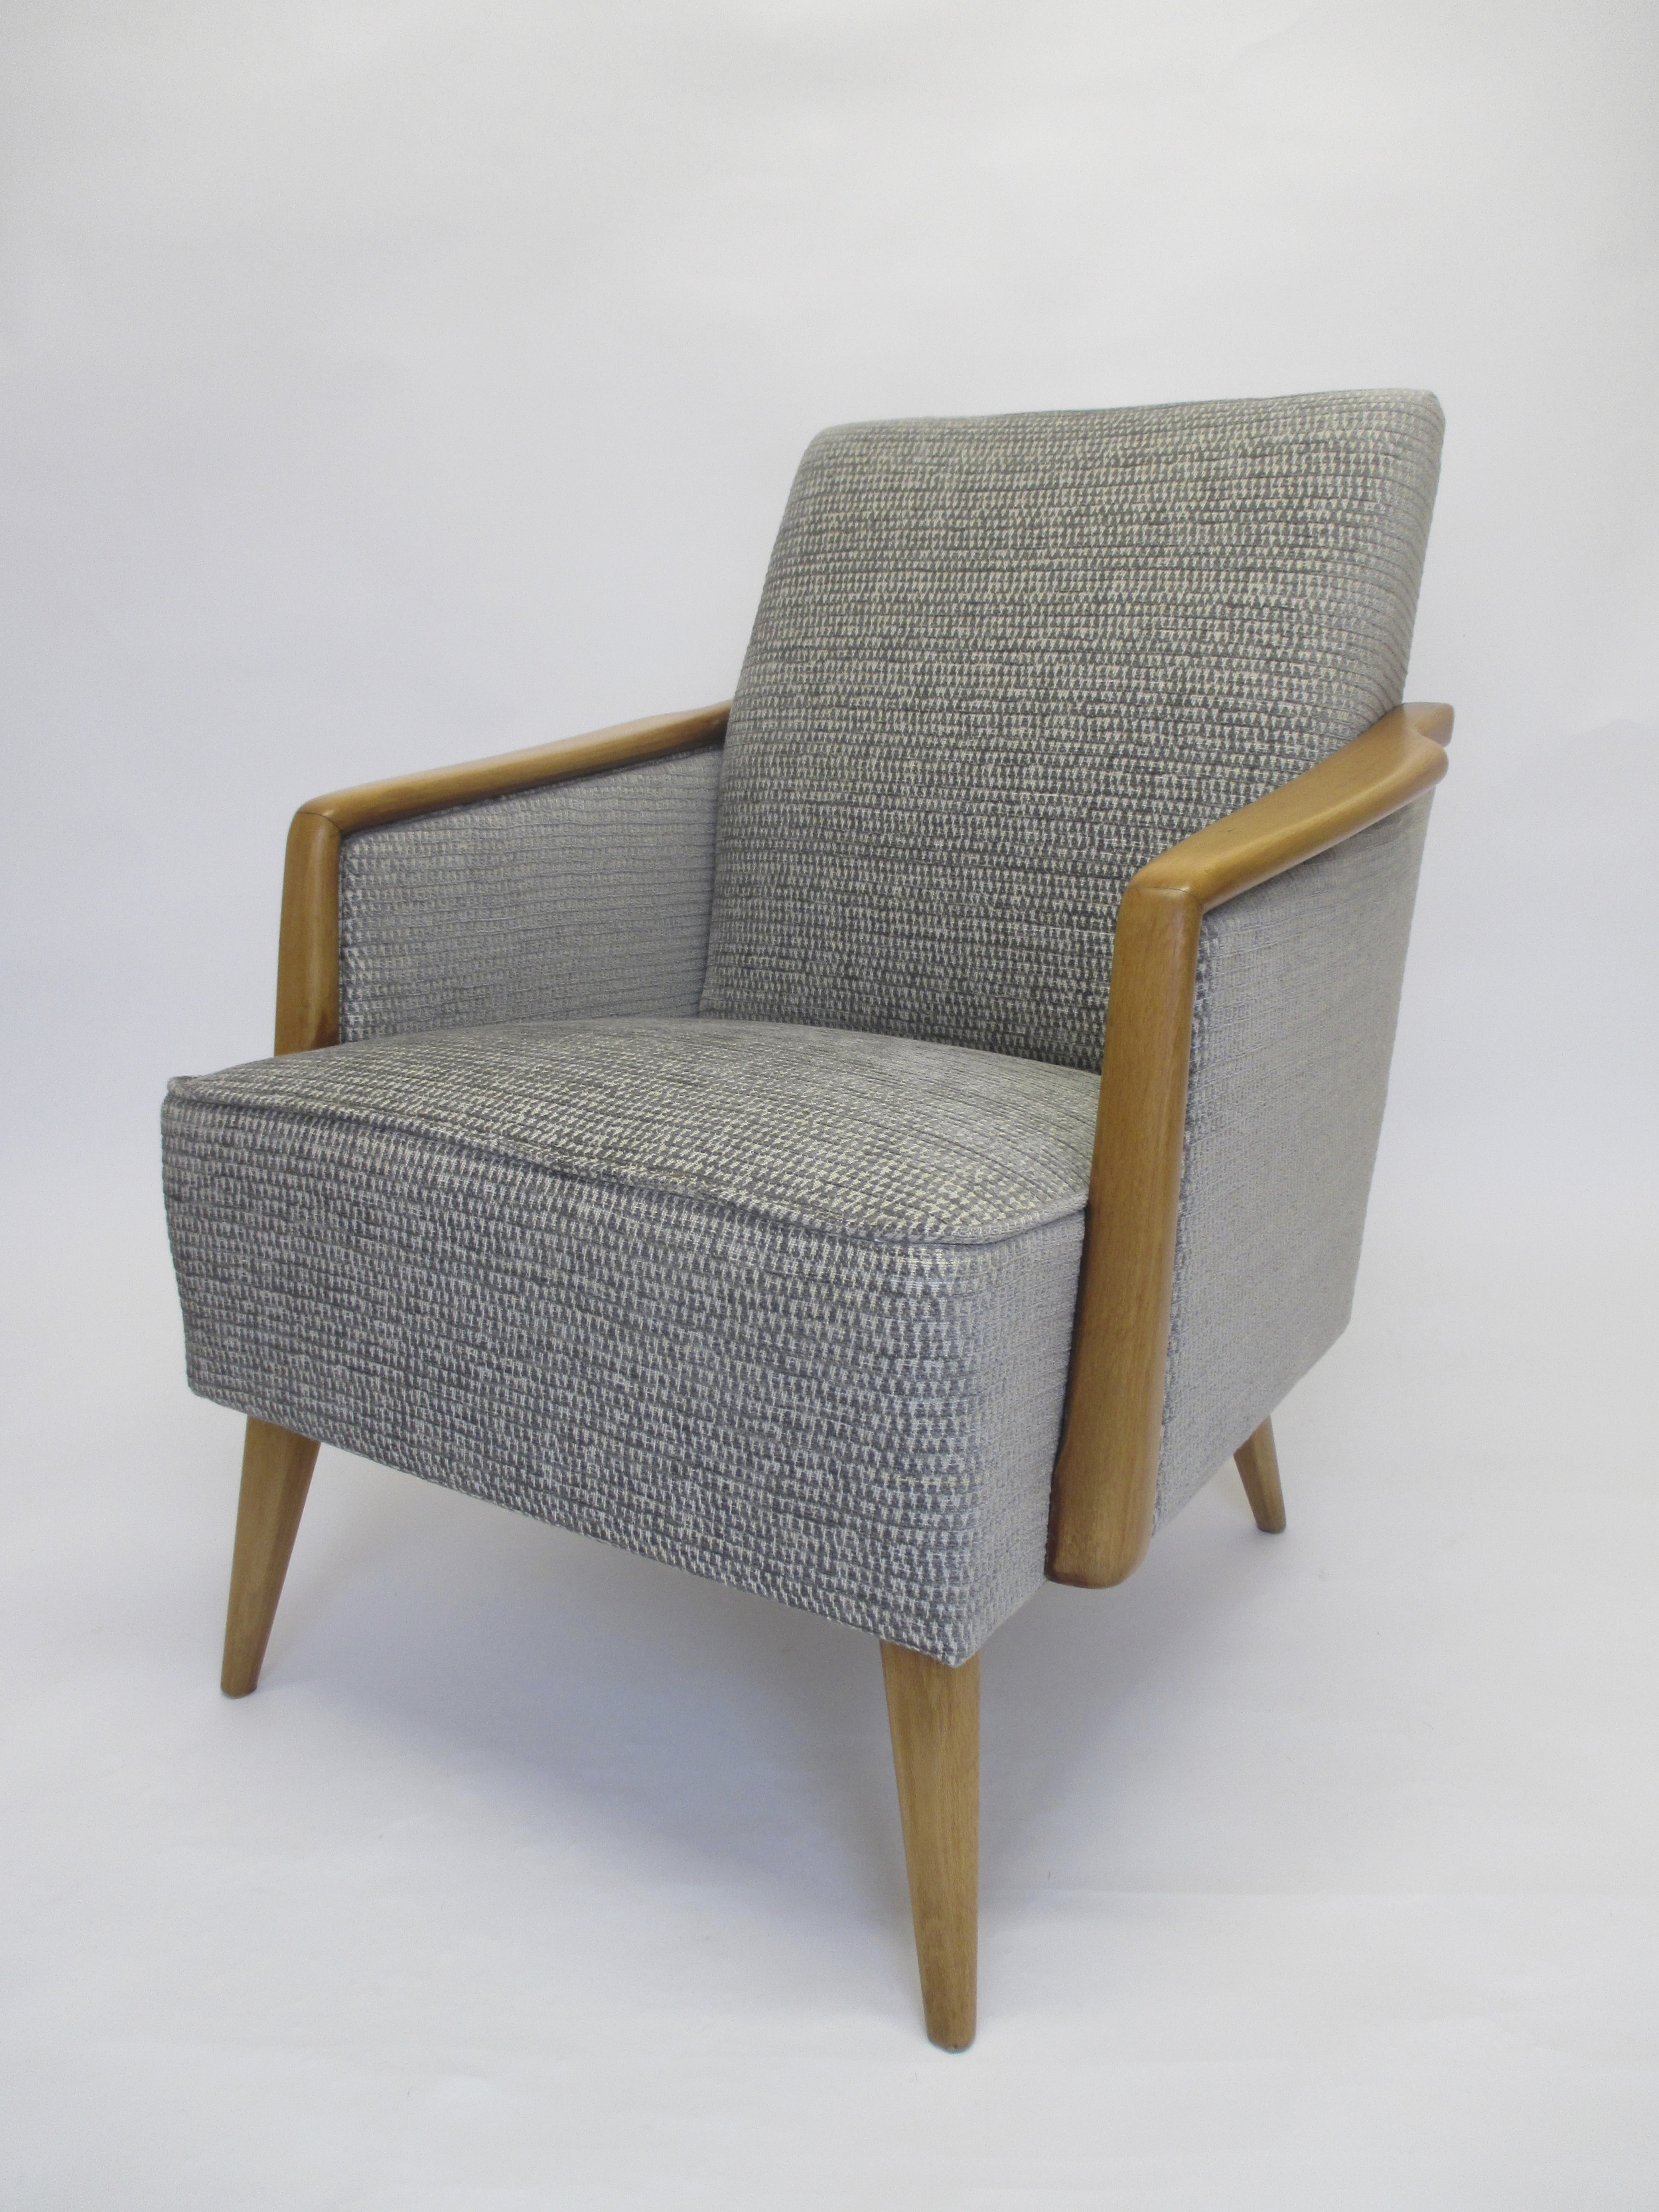 This chair was purchased from the 'Peanut Vendor', a London based shop who specialise in mid century furniture. It has been covered in a silvery grey Sanderson fabric that gives it a fresh clean look, enhancing the shape and line of the show wood.